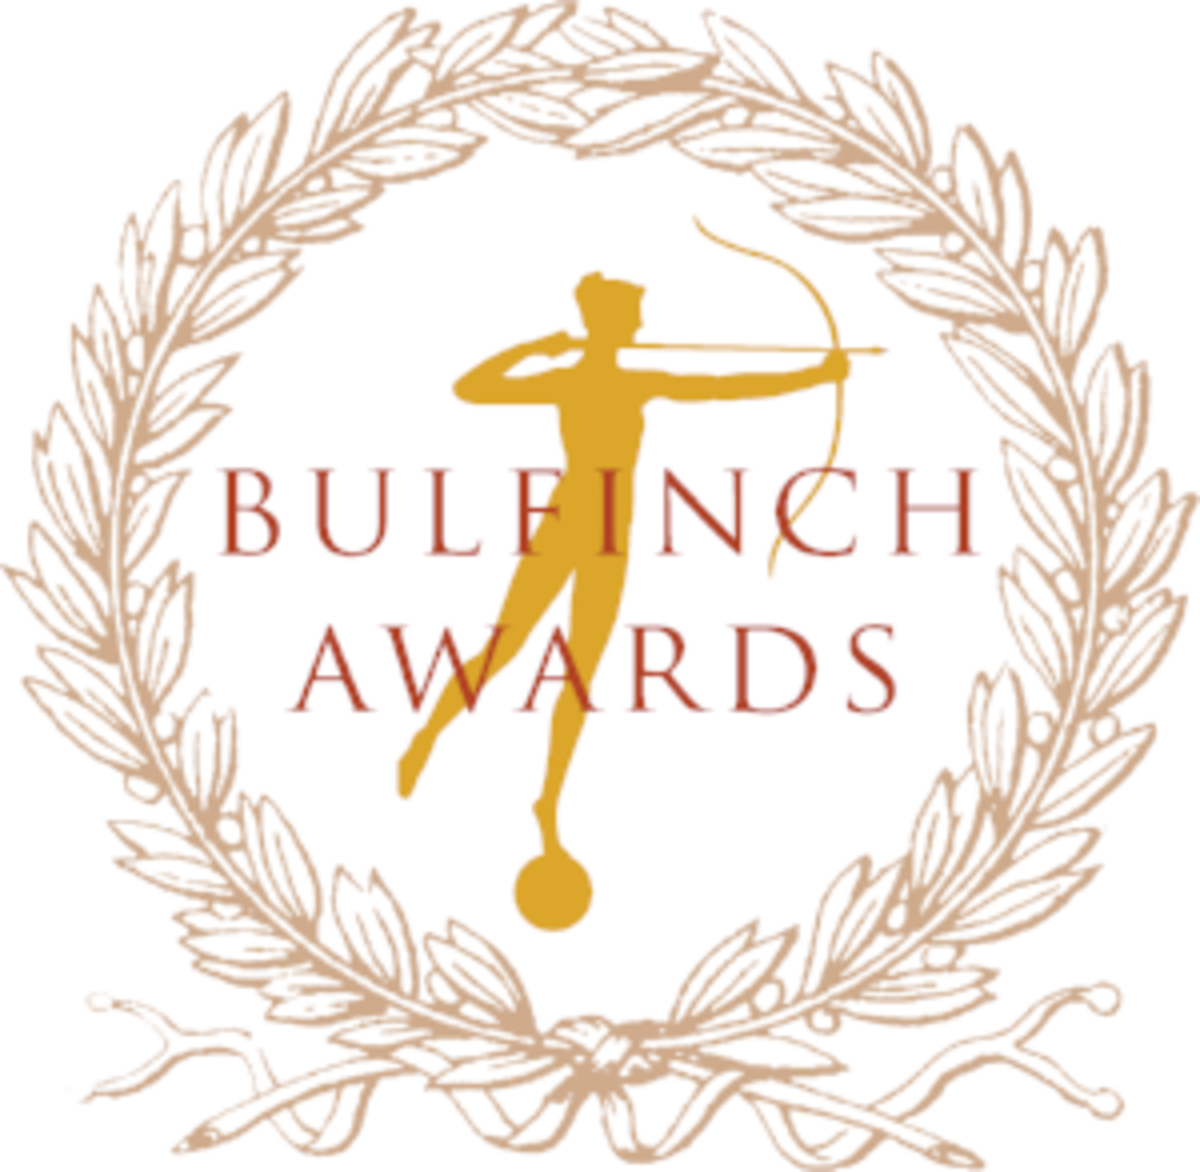 Bulfinch Awards logo